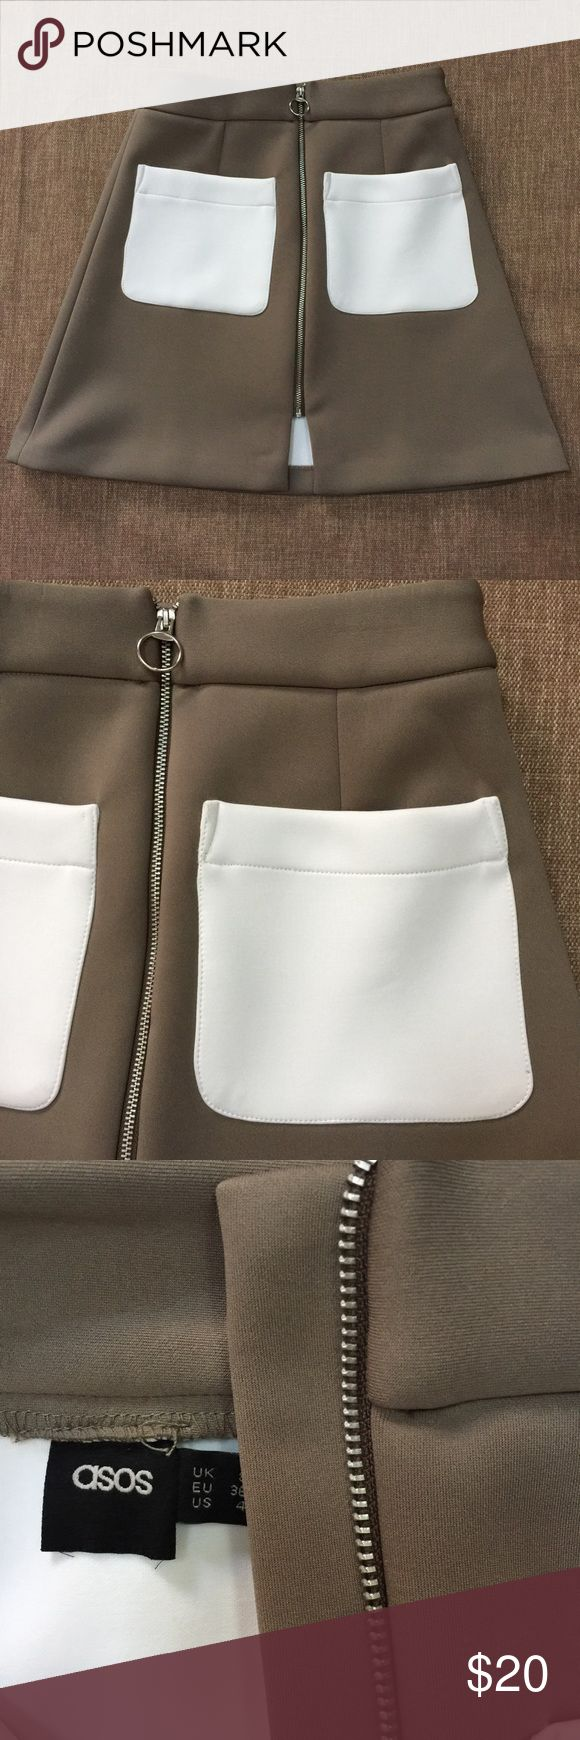 """Asos Skirt Size 4 Front zipper & white pockets This is an adorable  Asos Skirt in a size Size 4 it has a Front zipper & white pockets. Very well made. fabric is 98% polyester 2% elastane. An olive color with white pockets. 28"""" across waist laying flat. Top to bottom of skirt is 18"""".  This is is called an A-line skirt. Check our the photos for details. Back of the skirt is the solid color. ASOS Skirts"""